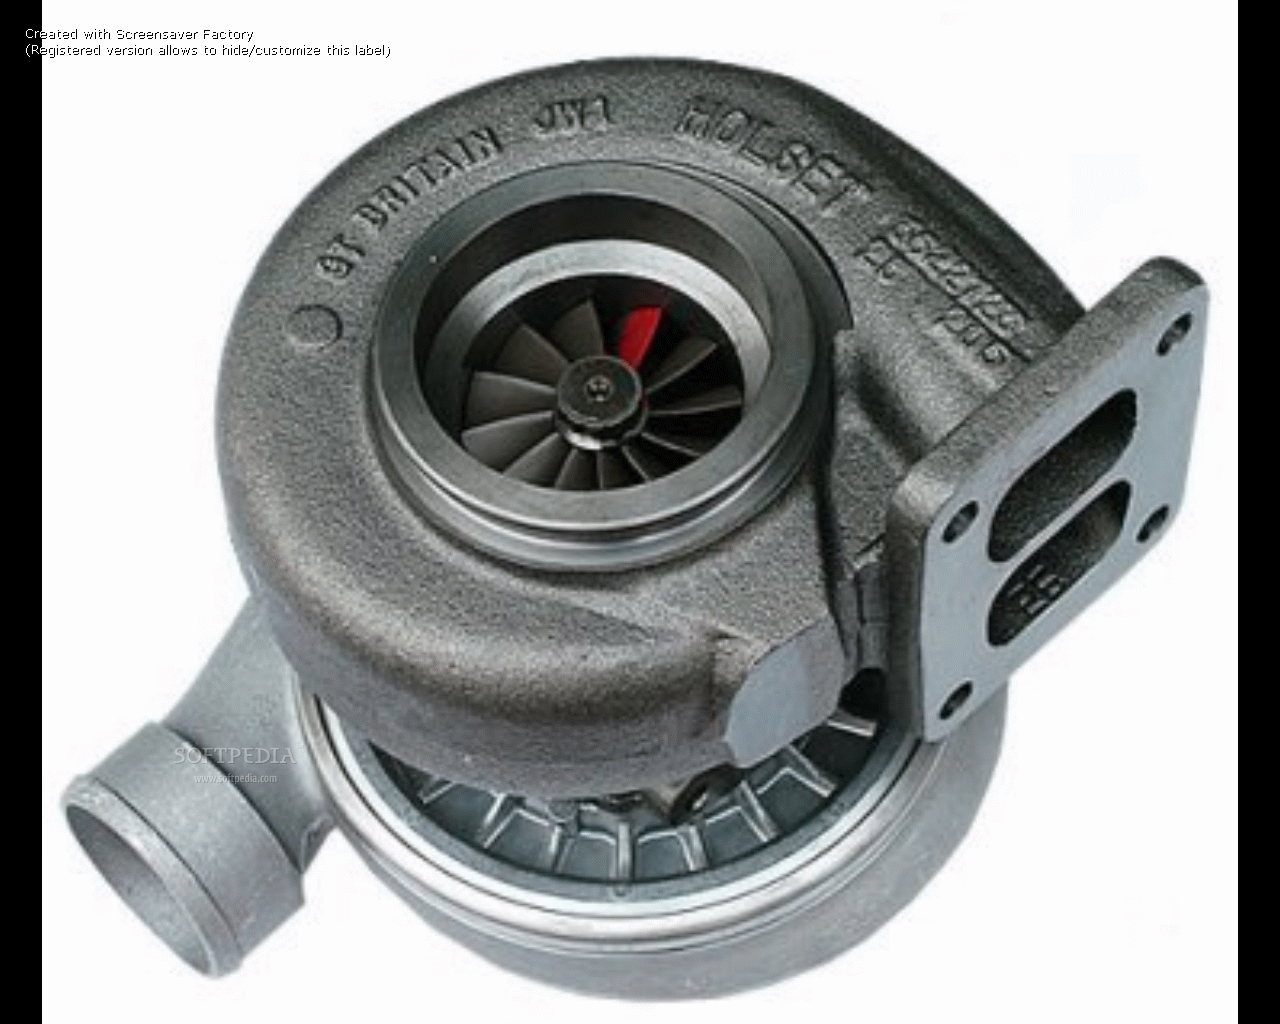 Turbo charger | Auto Mobile | Pinterest | Engine and Cars